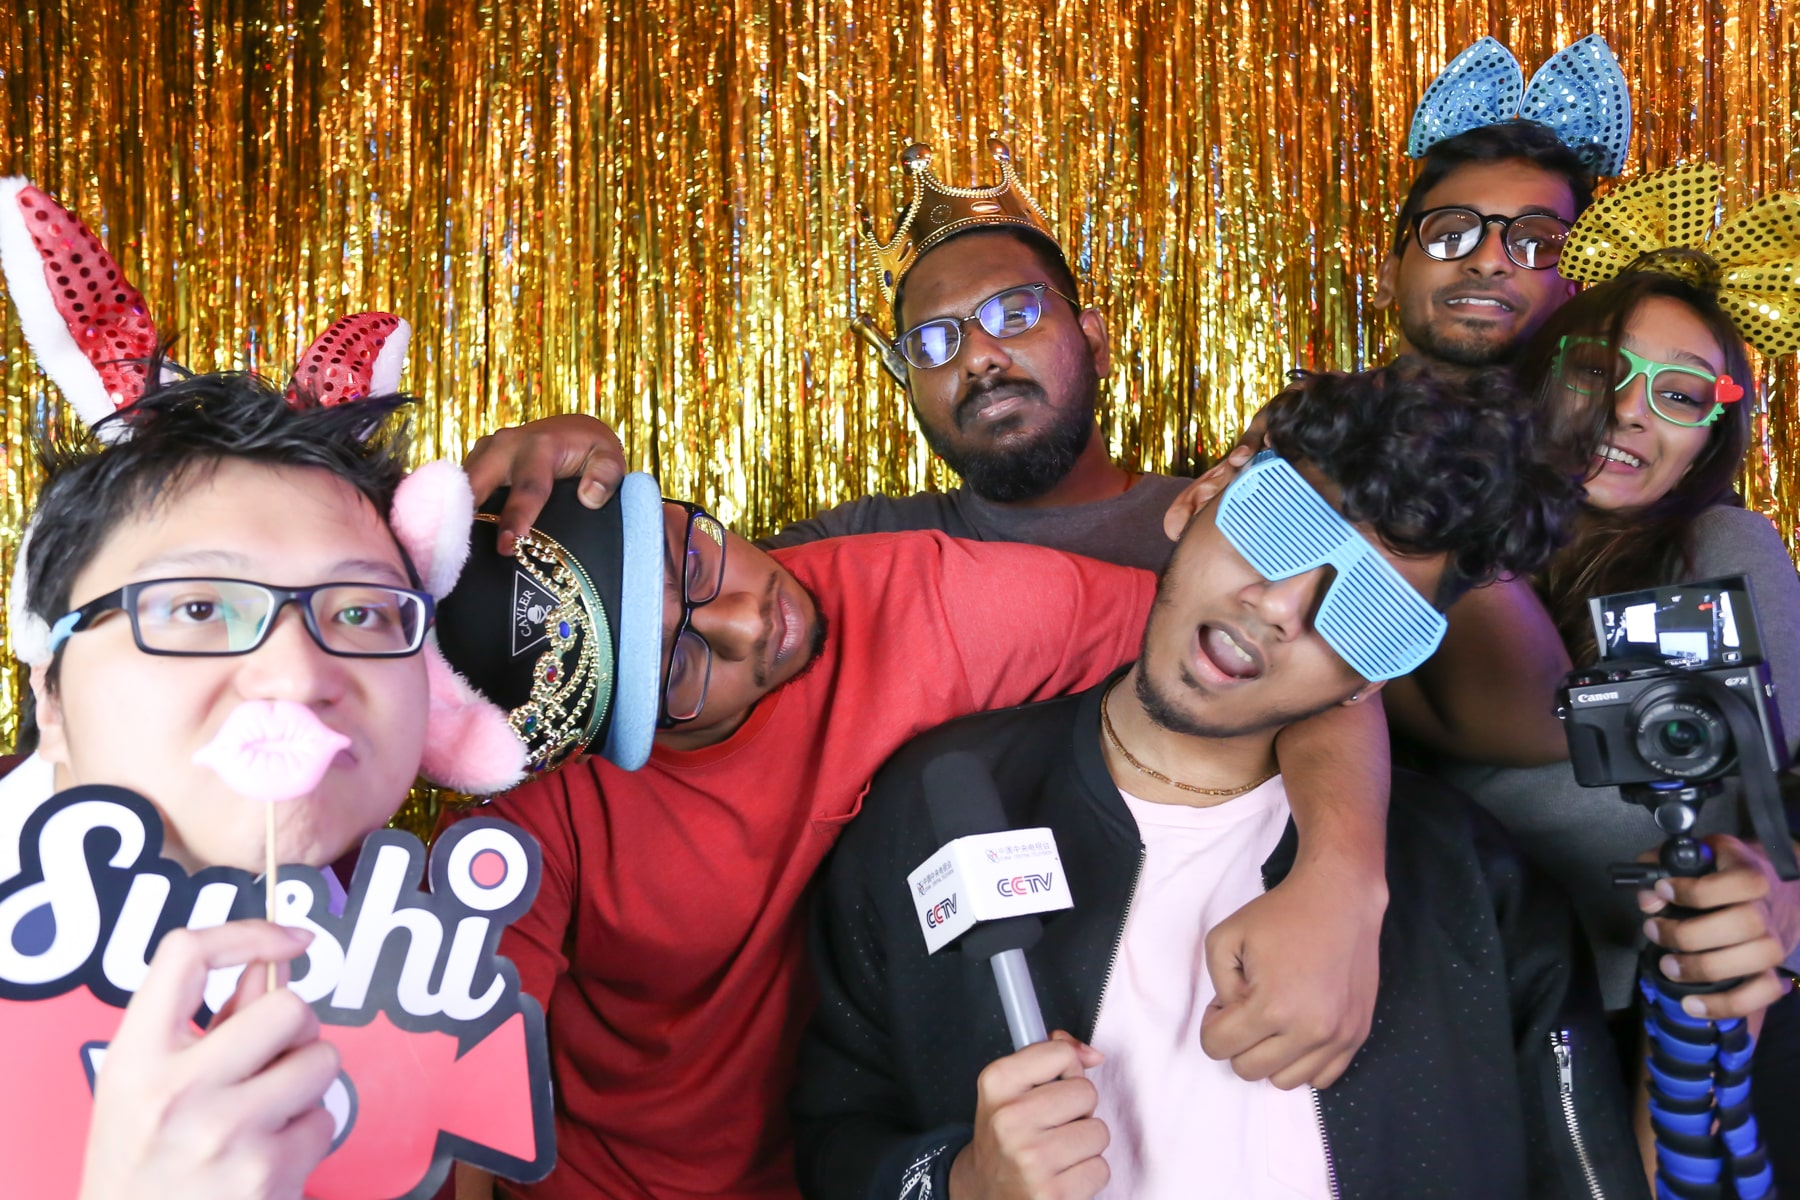 Sushivid+crunch+tagbooth+173